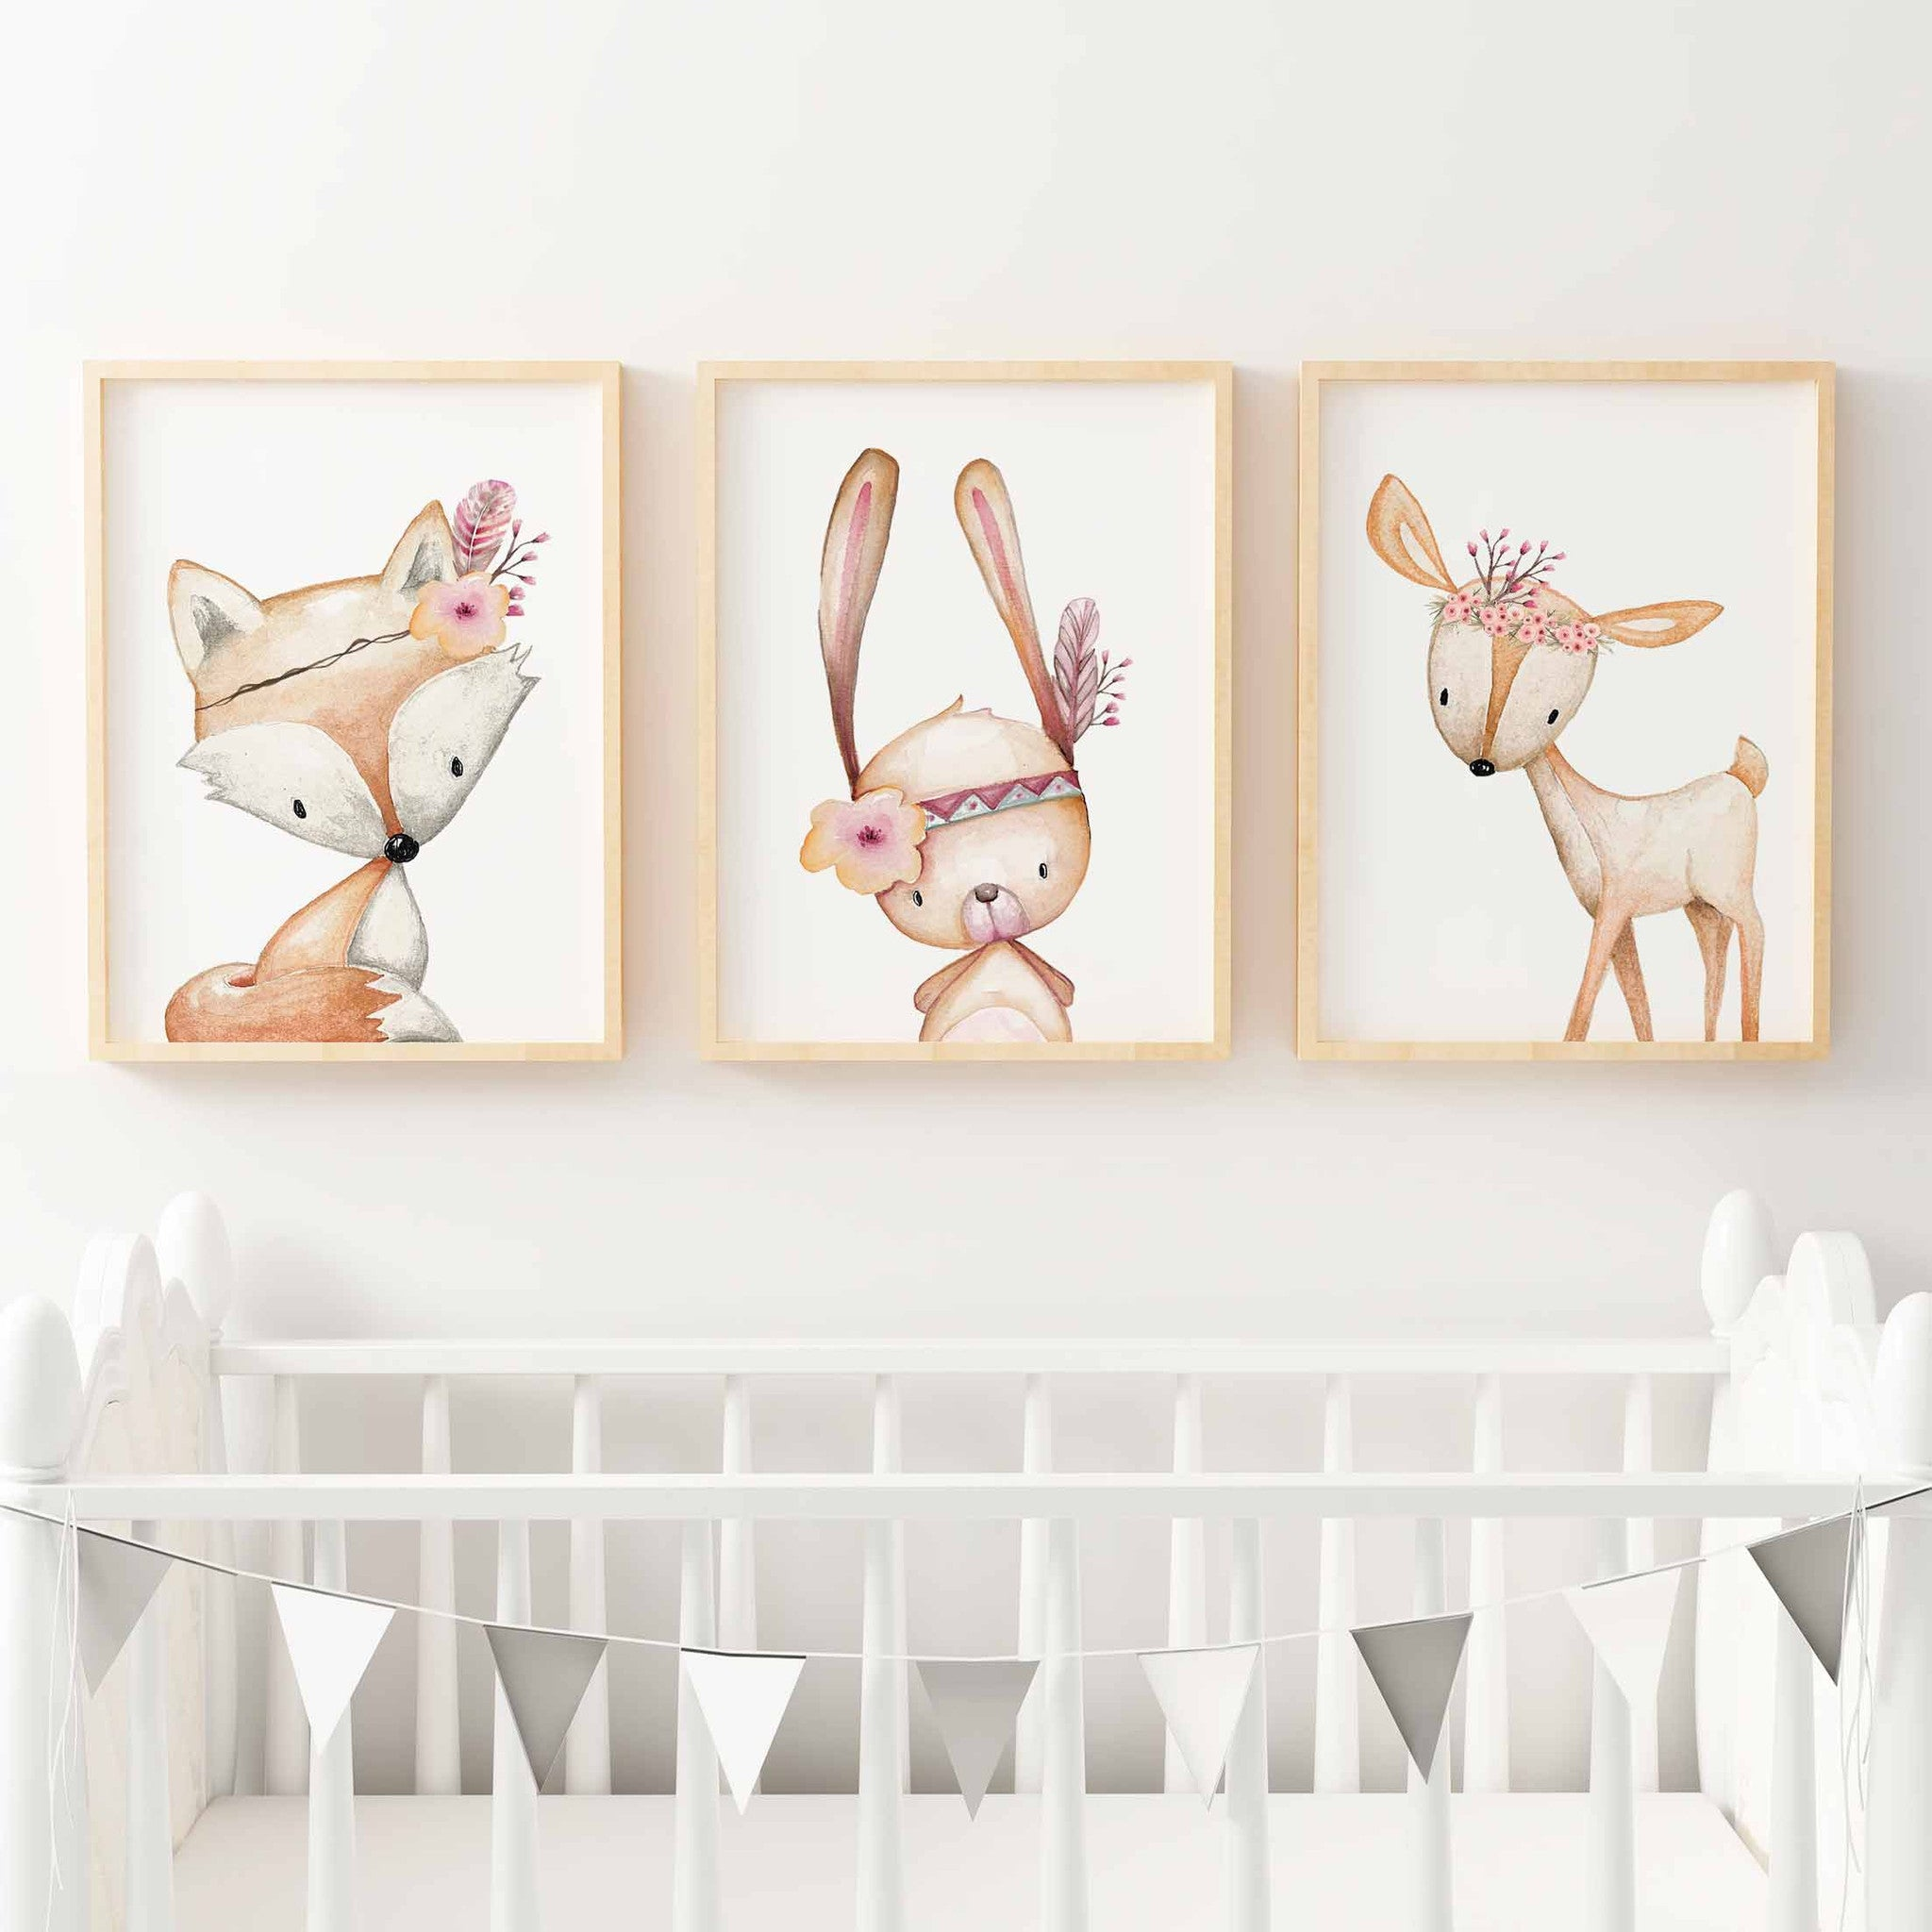 Nursery Art For Children Kids Wall Art Baby Girl Nursery Baby: Baby, Girls Floral Woodland Nursery Or Bedroom Wall Art